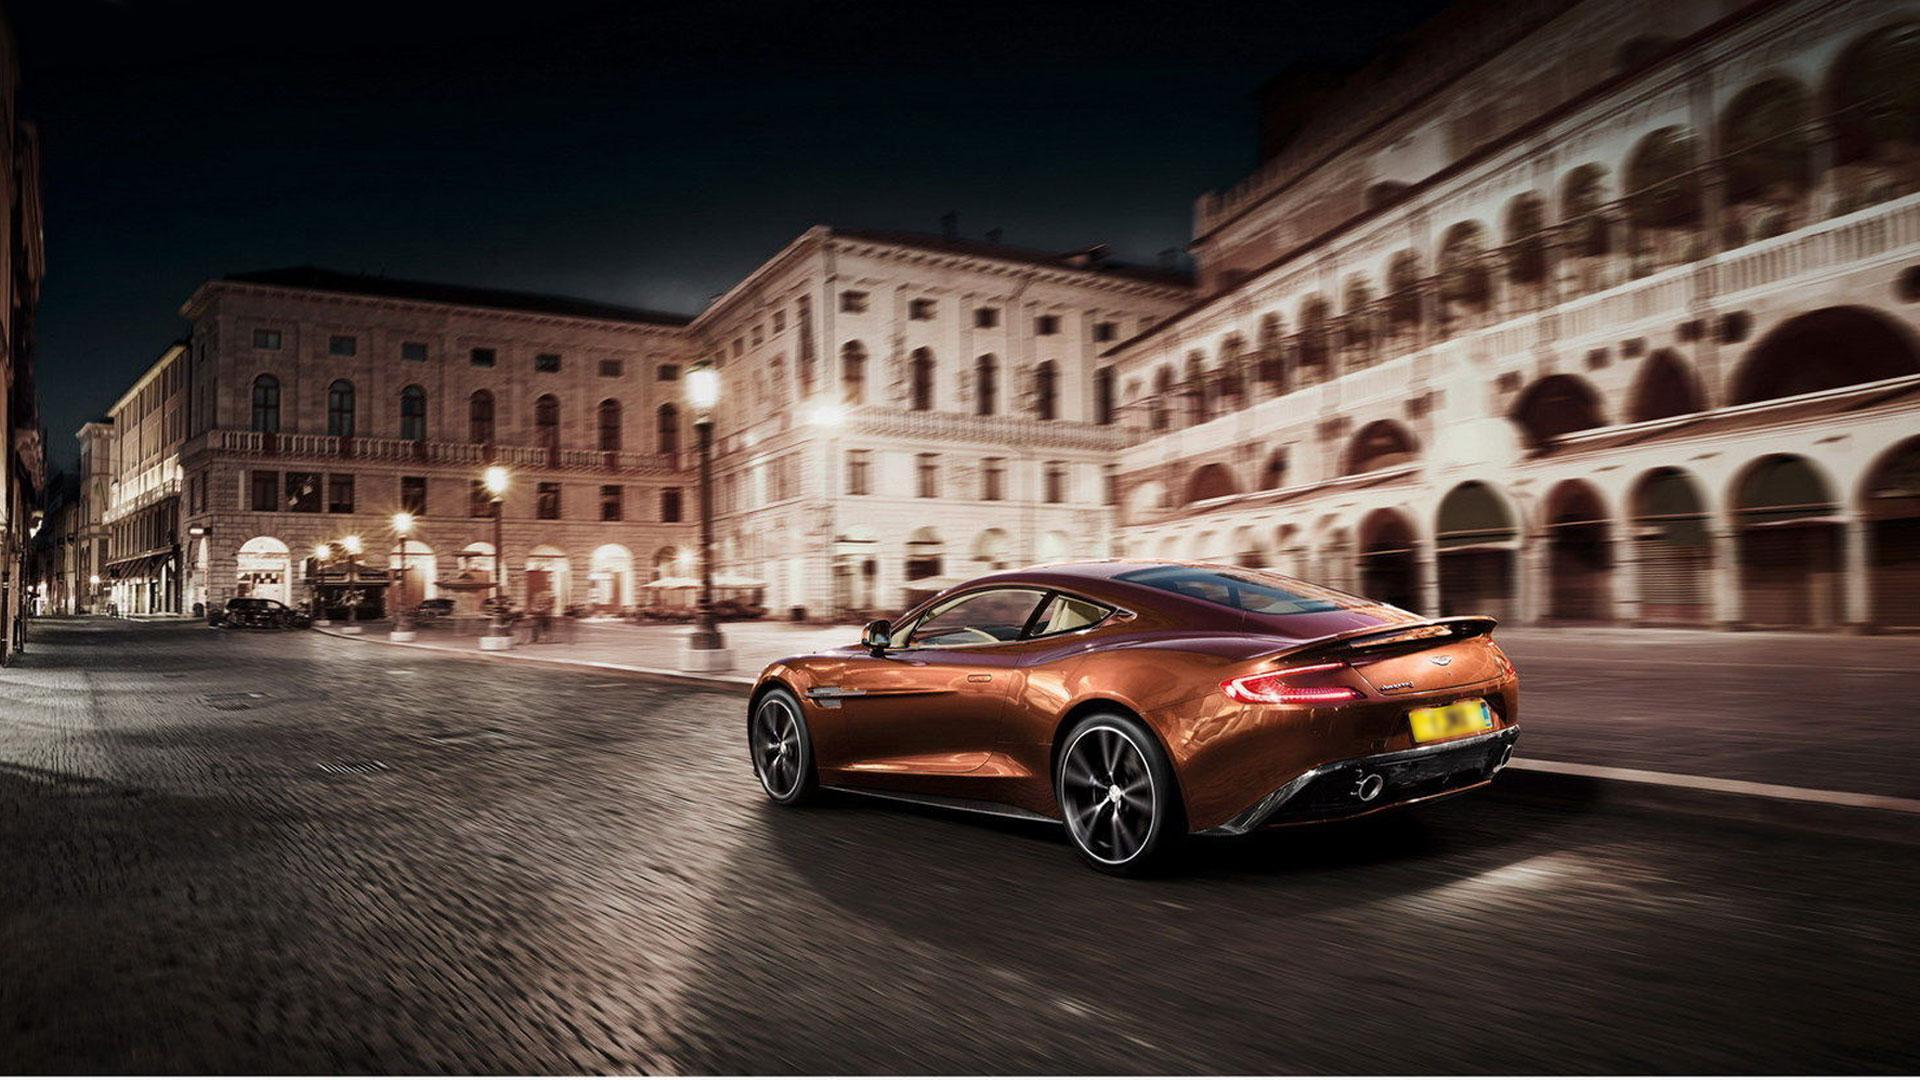 Wallpapers Aston Martin Vanquish Hd Freak Wheel